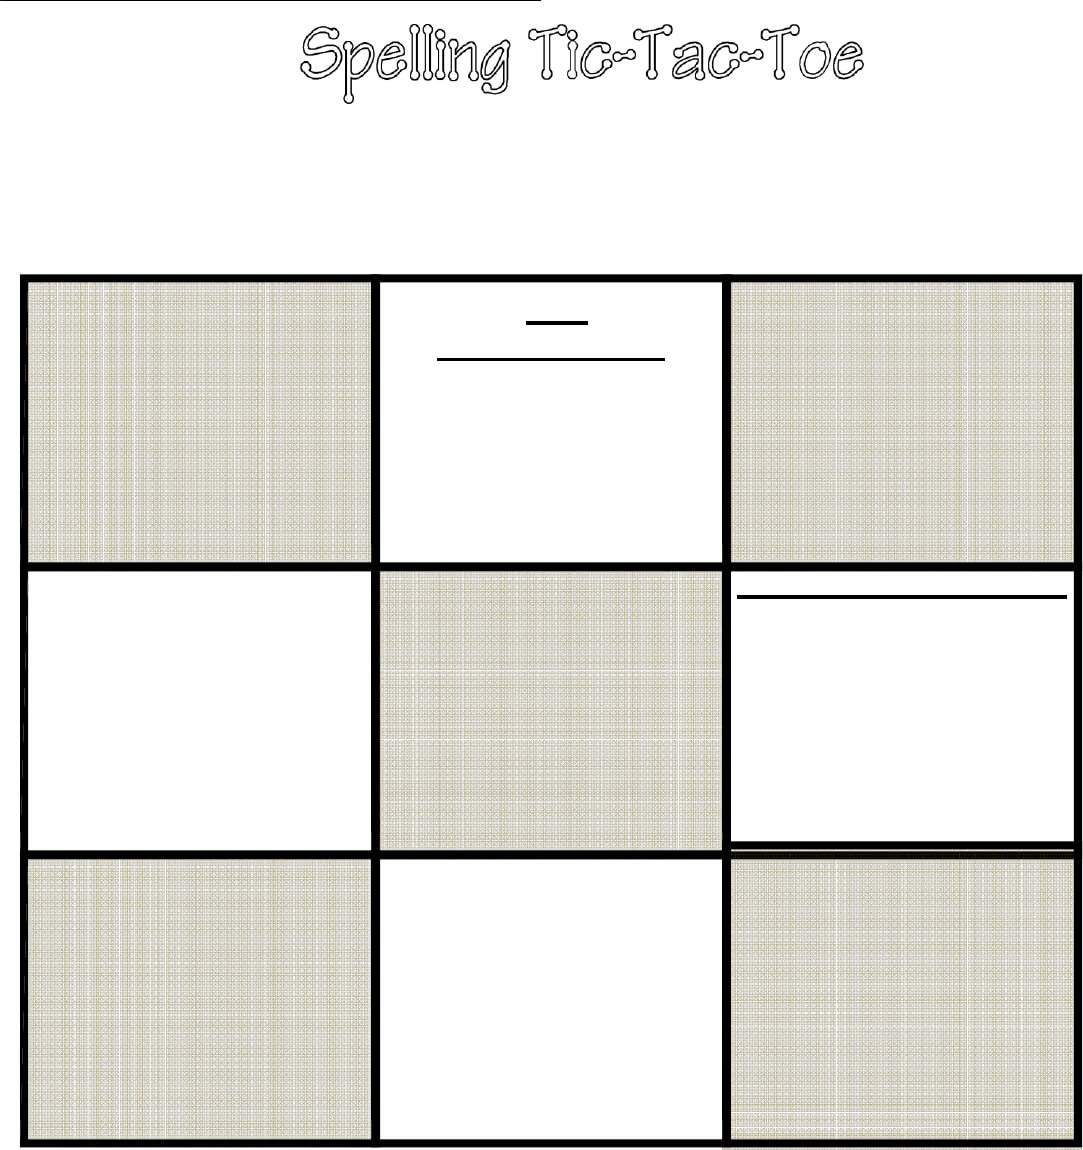 Tic Tac Toe Template In Word And Pdf Formats In Tic Tac Toe Template Word